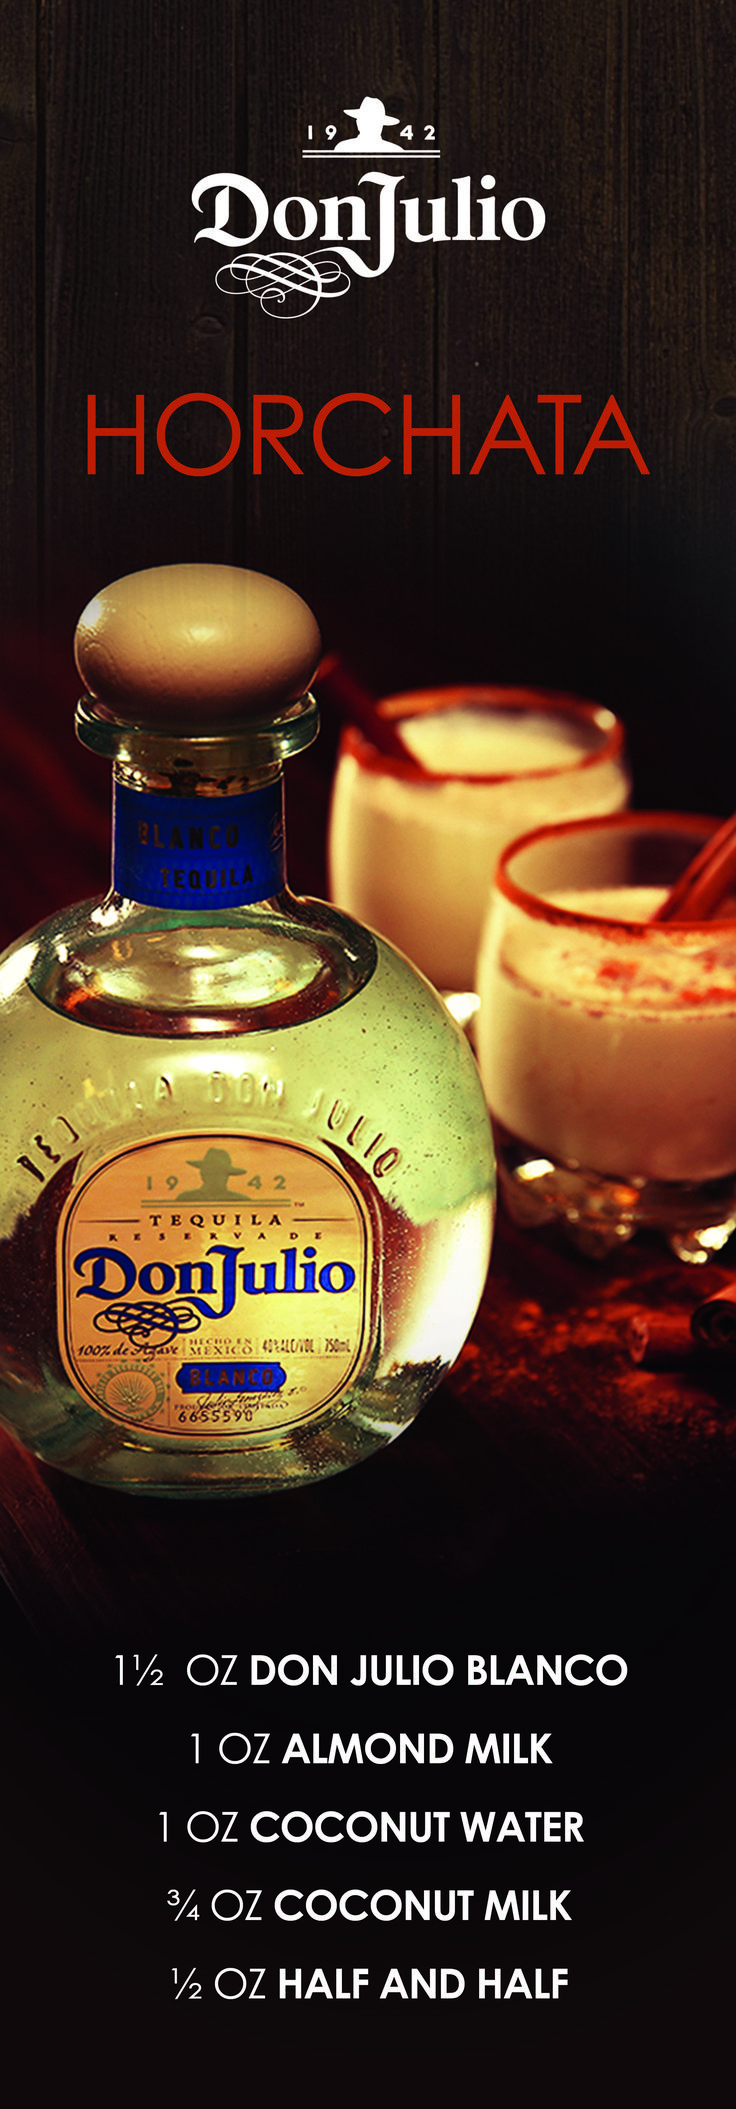 Tequila puts a twist on Horchata, the classic Mexican drink. Combine 1½  oz Don Julio Blanco, 1 oz almond milk, 1 oz coconut water, ¾ oz coconut milk, and ½ oz half and half. Strain into cocktail glass and enjoy the Don Julio Horchata with friends.